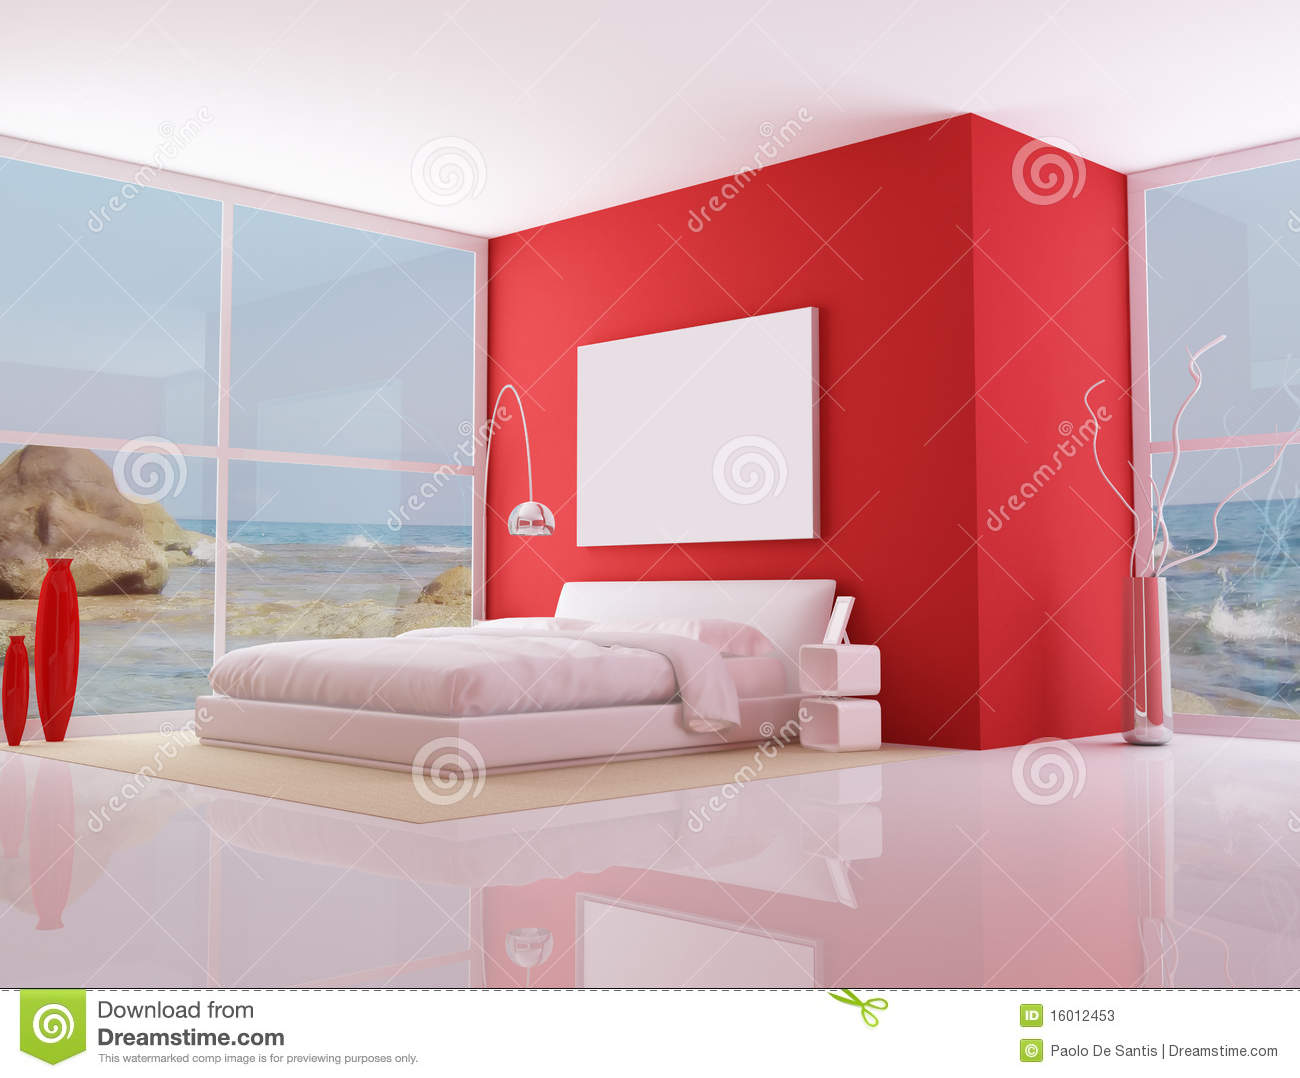 Chambre coucher minimaliste rouge photos stock image 16012453 - Chambre a coucher rouge ...